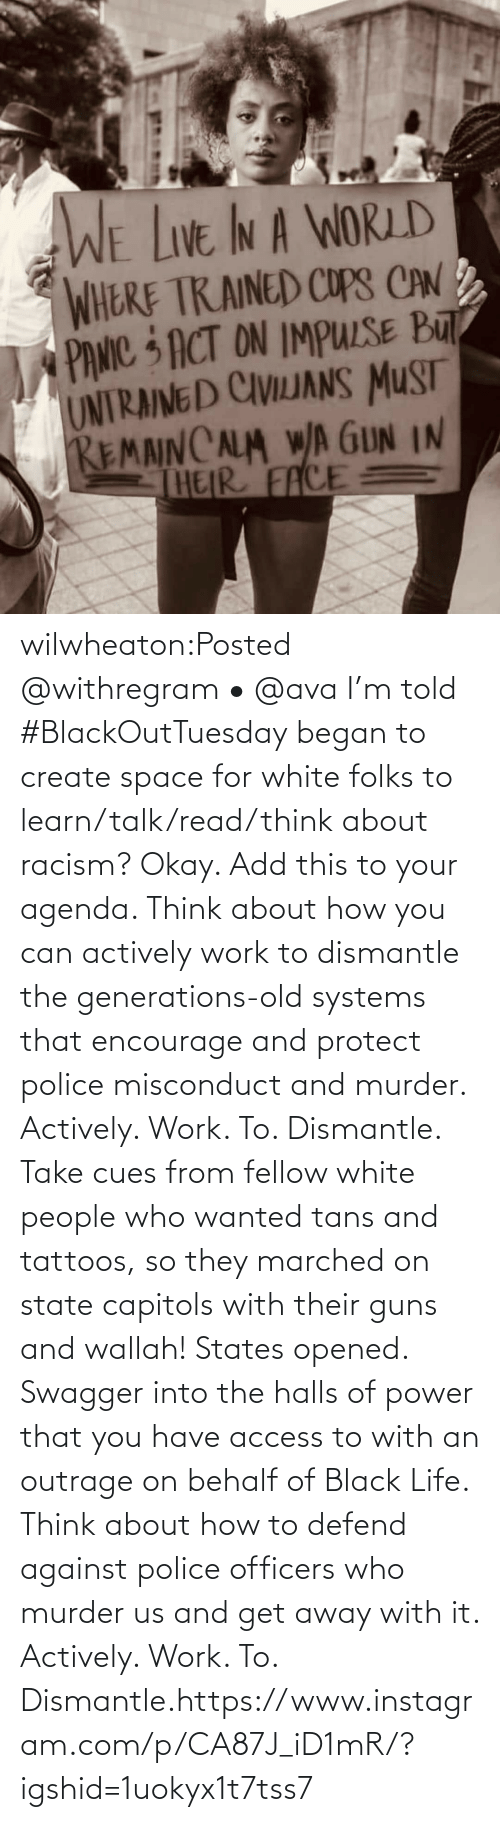 their: wilwheaton:Posted @withregram • @ava I'm told #BlackOutTuesday began to create space for white folks to learn/talk/read/think about racism? Okay. Add this to your agenda. Think about how you can actively work to dismantle the generations-old systems that encourage and protect police misconduct and murder. Actively. Work. To. Dismantle. Take cues from fellow white people who wanted tans and tattoos, so they marched on state capitols with their guns and wallah! States opened. Swagger into the halls of power that you have access to with an outrage on behalf of Black Life. Think about how to defend against police officers who murder us and get away with it. Actively. Work. To. Dismantle.https://www.instagram.com/p/CA87J_iD1mR/?igshid=1uokyx1t7tss7